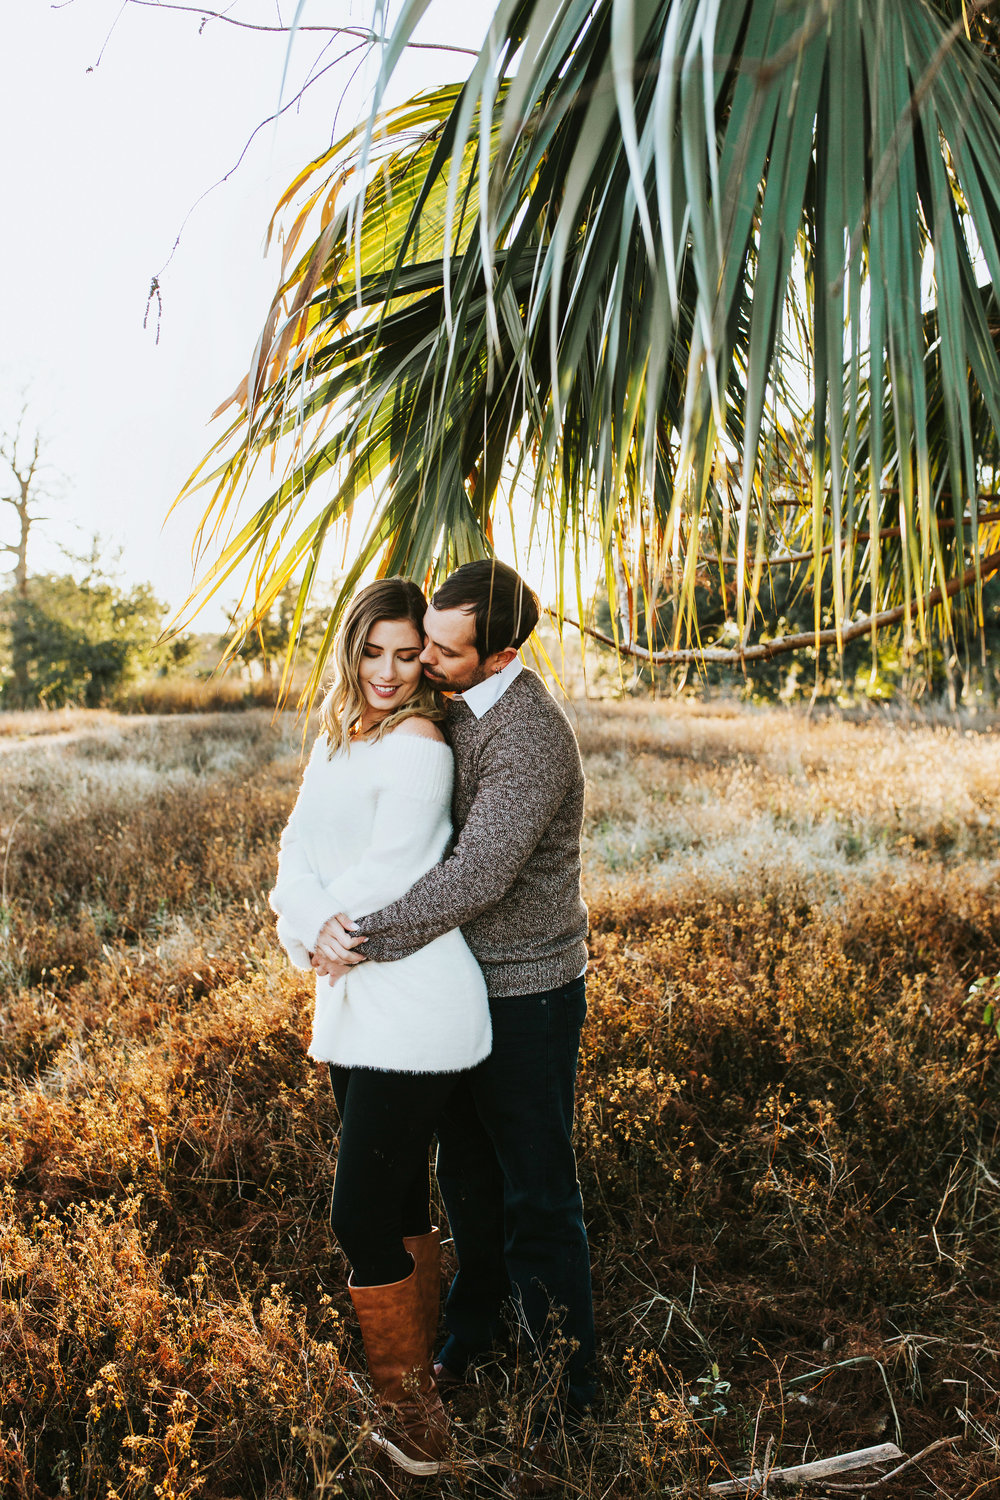 New Orleans Wedding Photographer Engagement Session at City Park New Orleans33.jpg